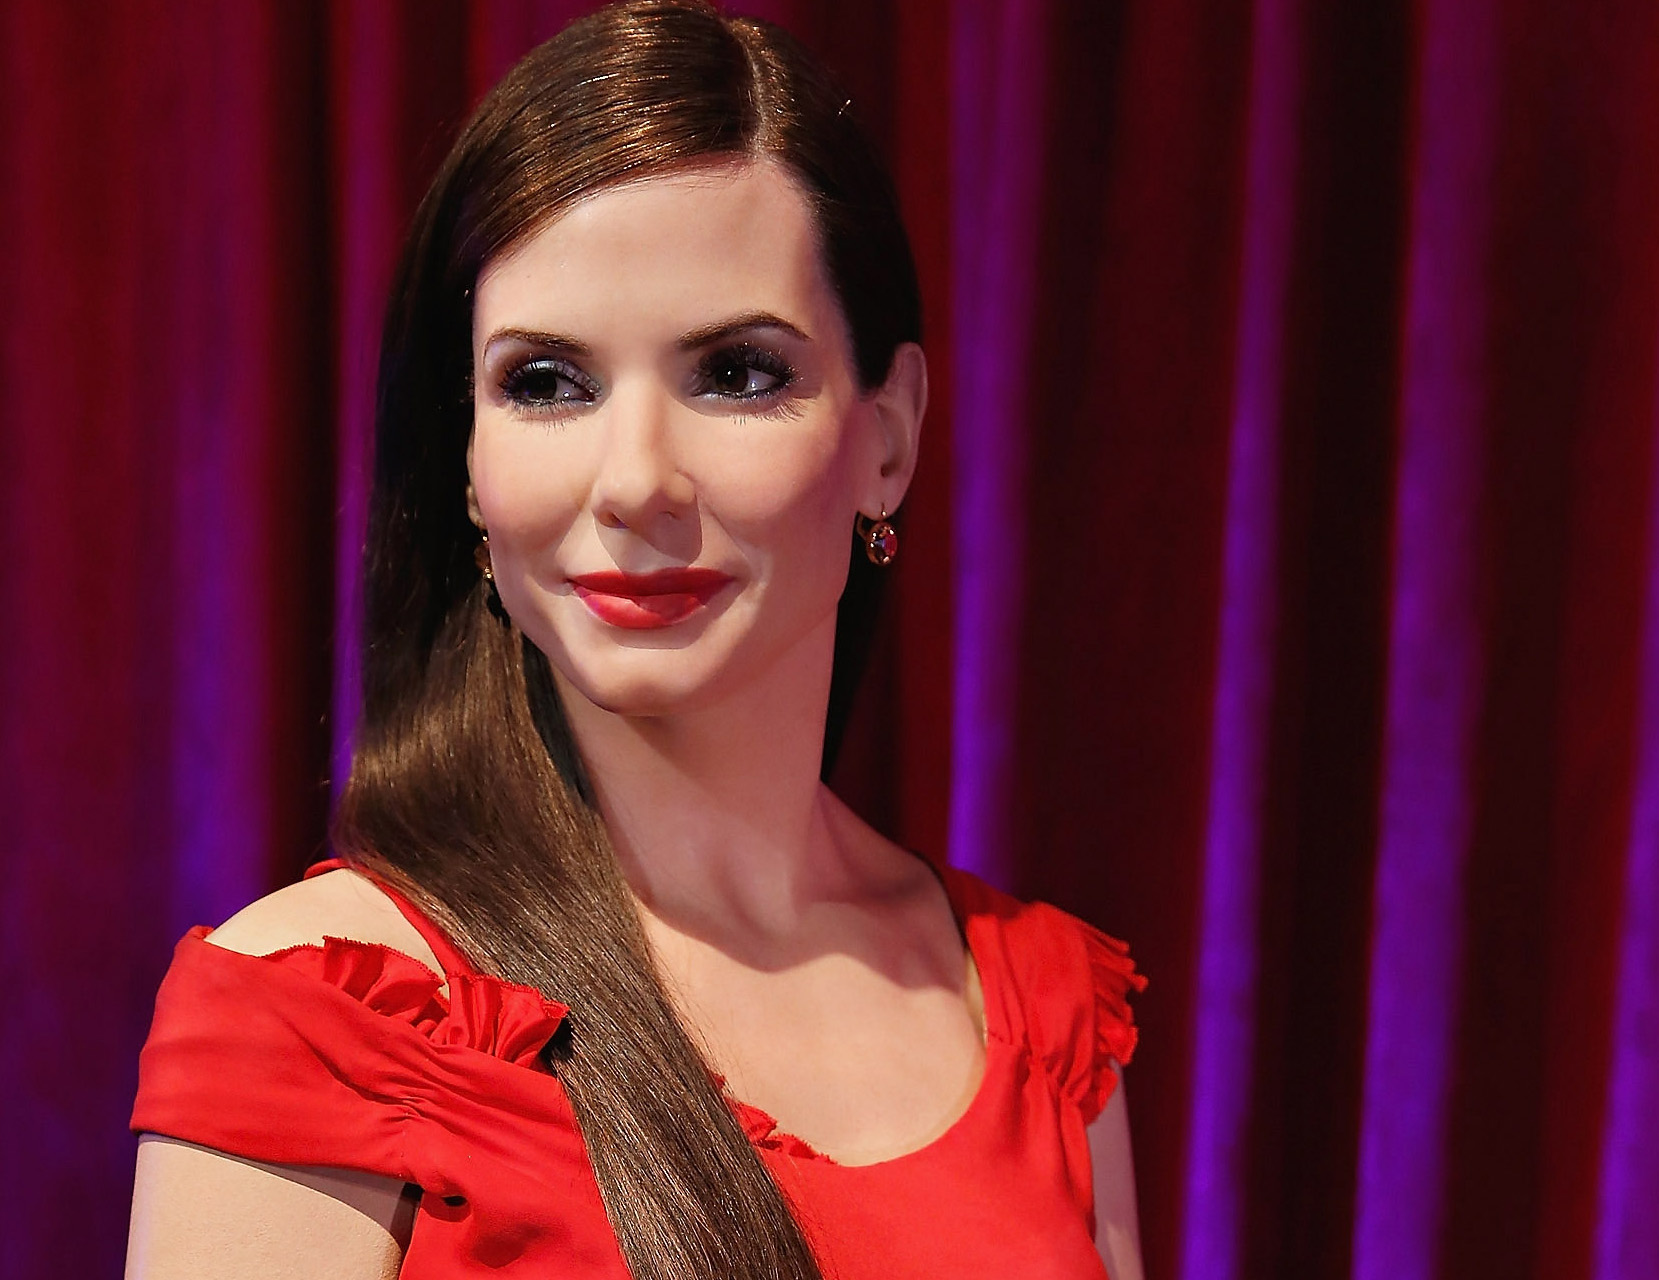 Sandra Bullock's Wax Figure Makes New York Debut At Madame Tussauds For Her 50th Birthday